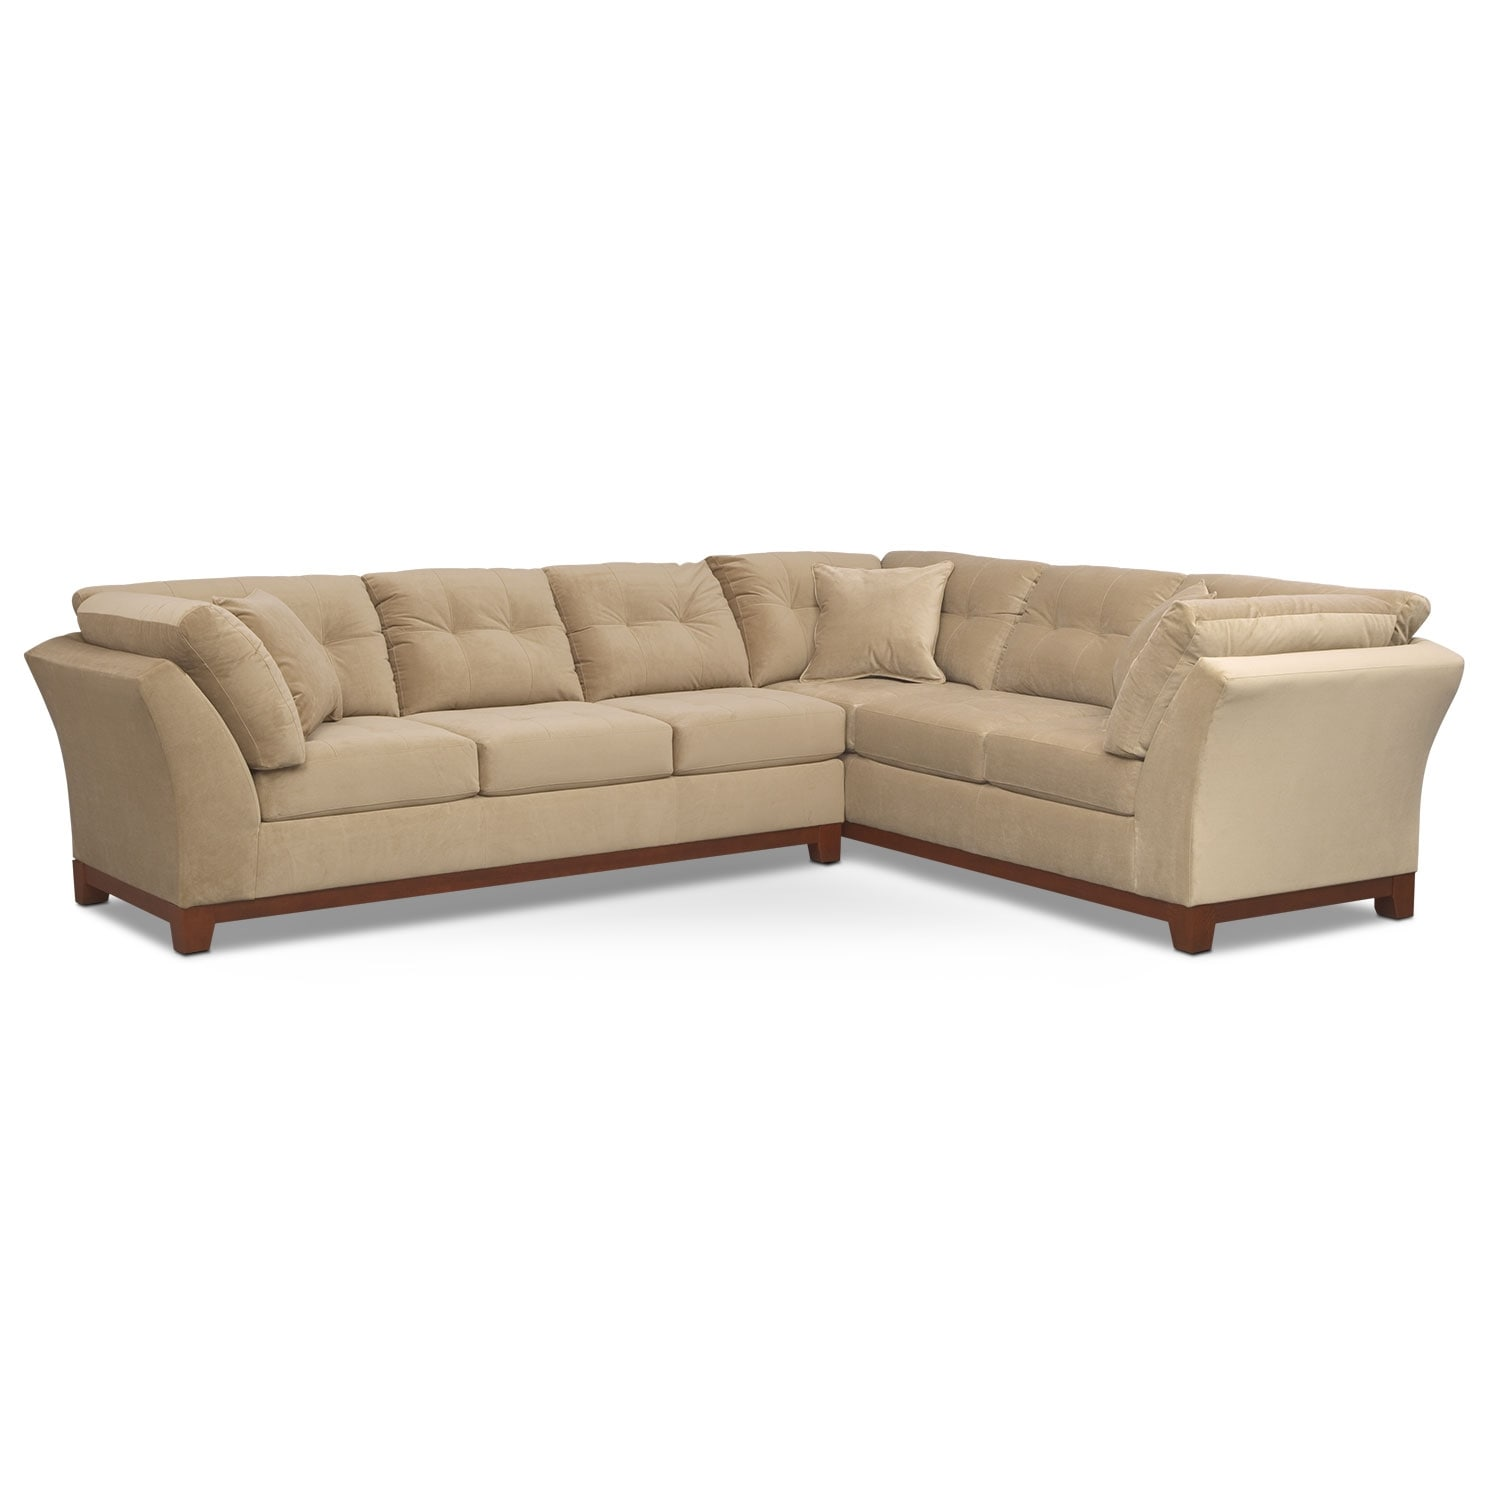 Living Room Furniture - Solace Cocoa II 2 Pc. Sectional (Reverse)